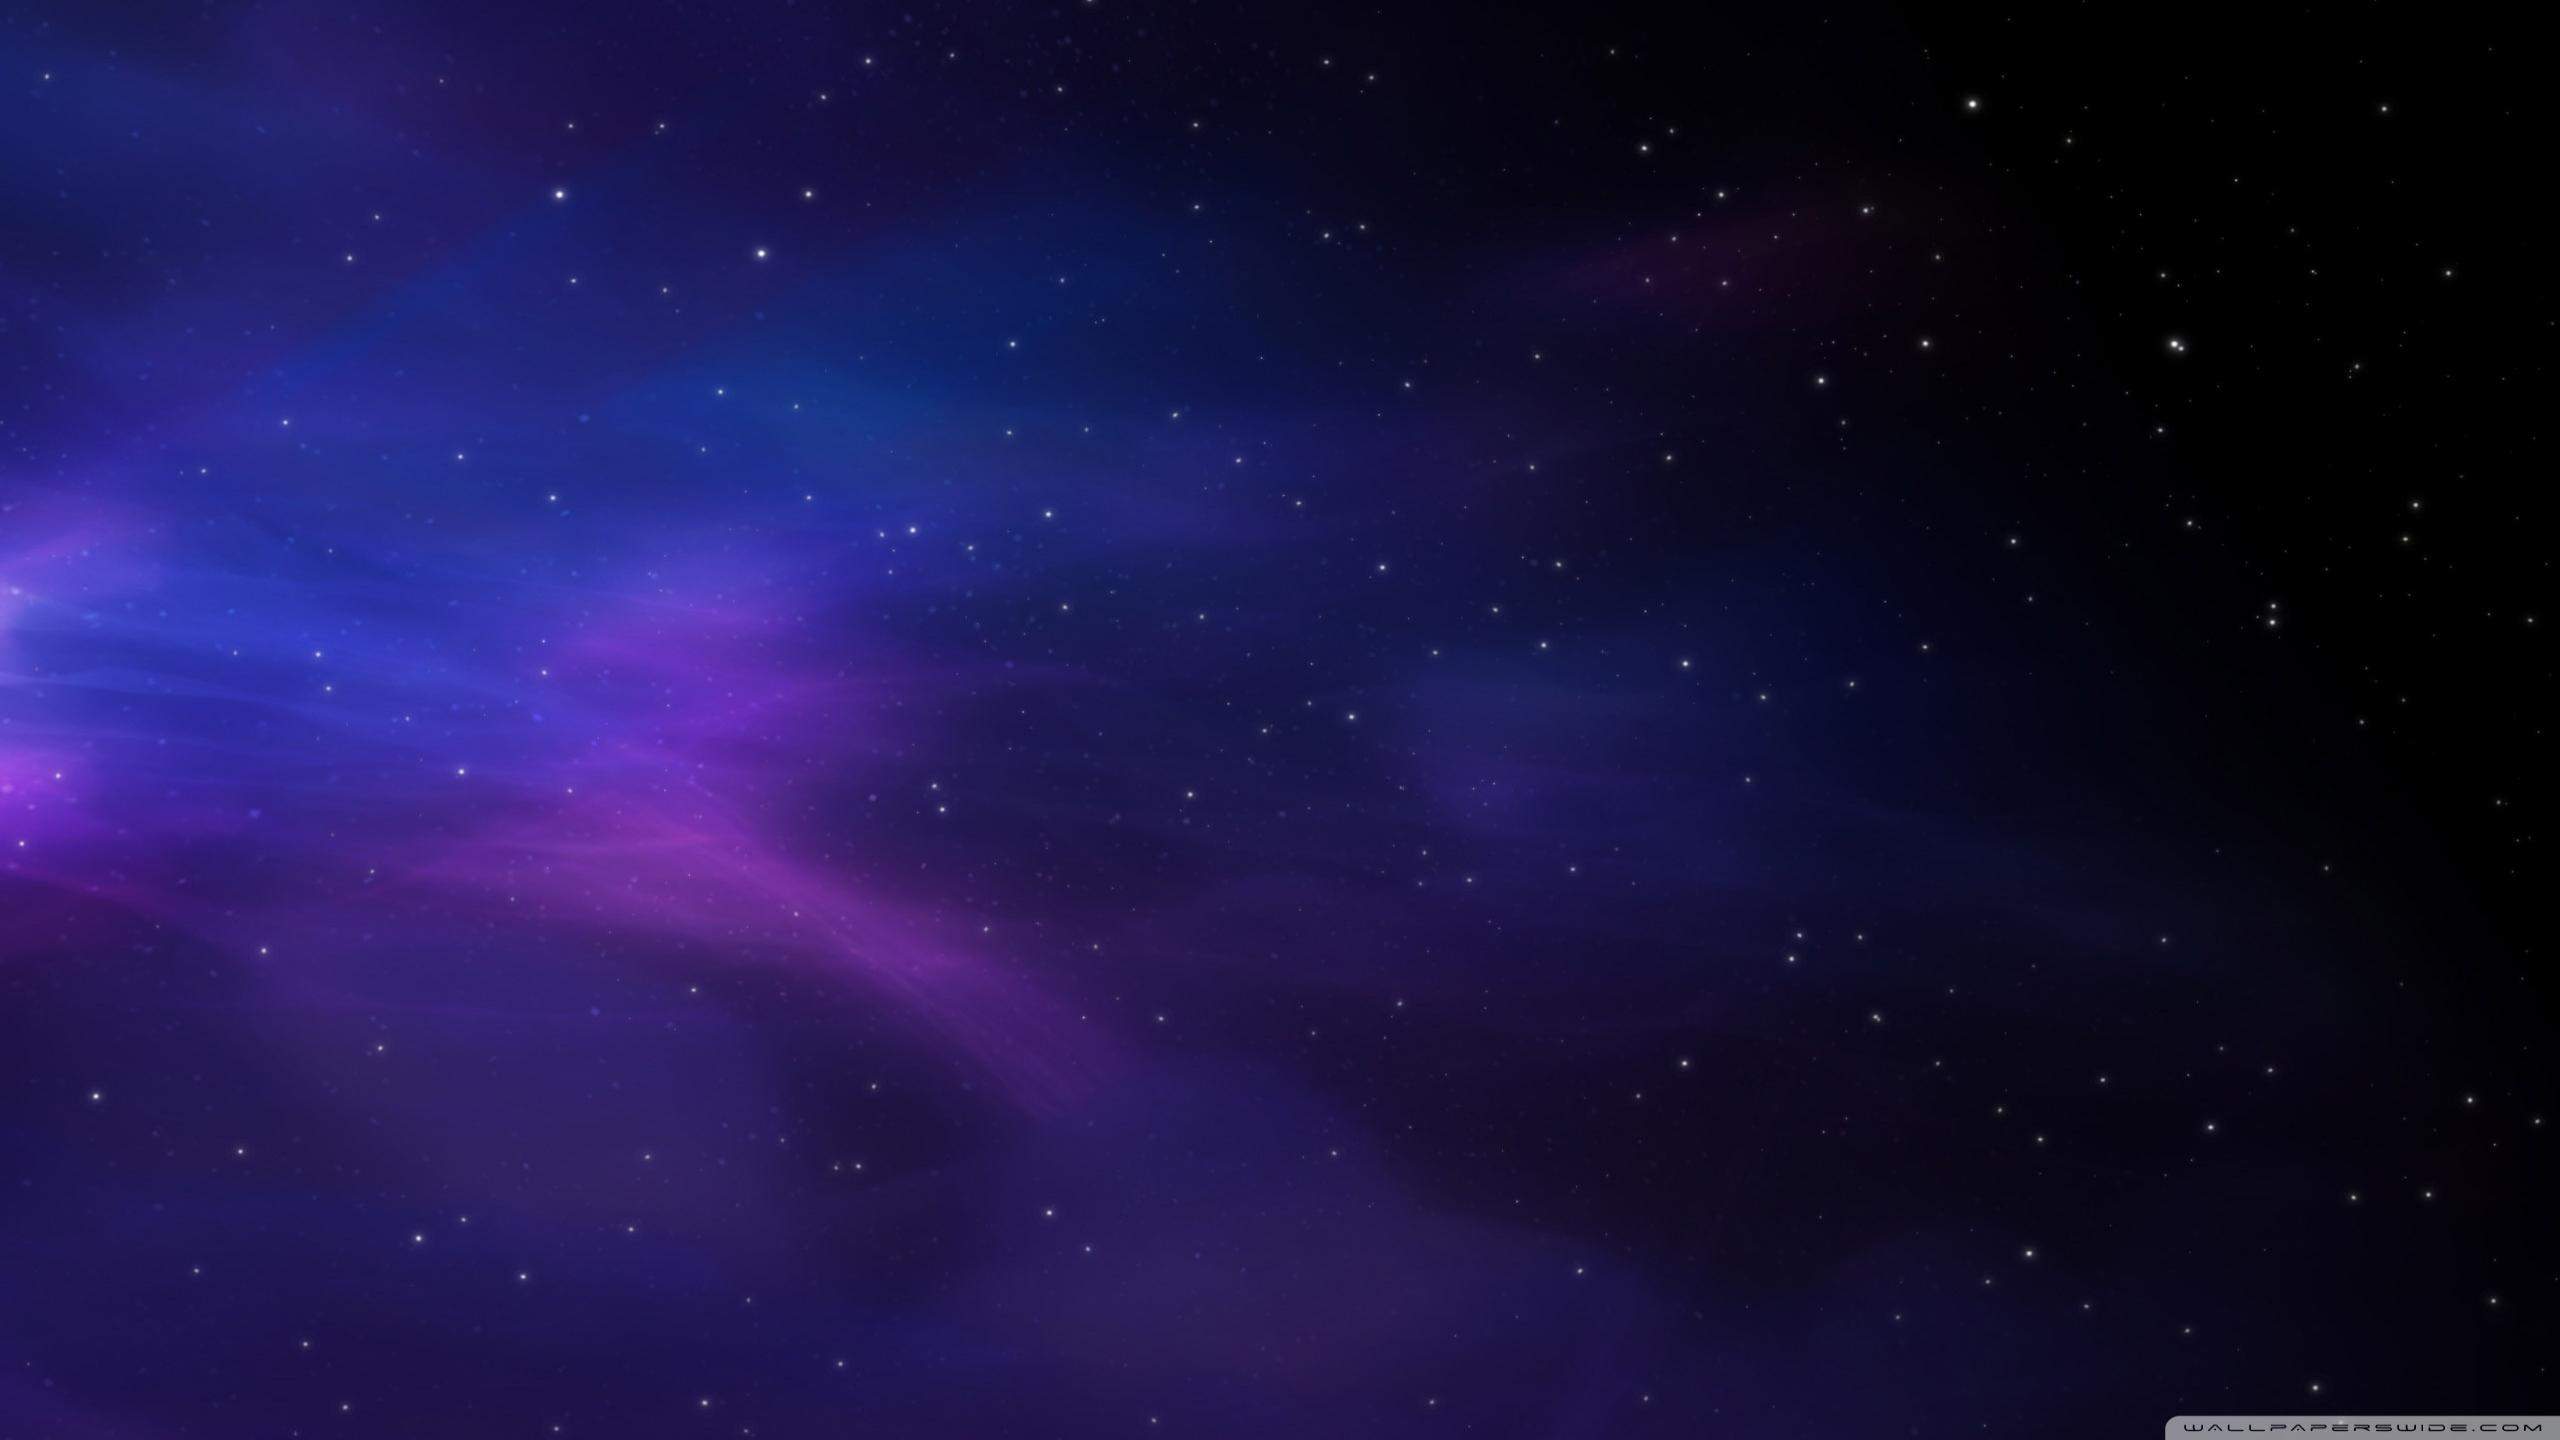 Download Tumblr Galaxy space 2560x1440 HD Wallpaper 2560x1440